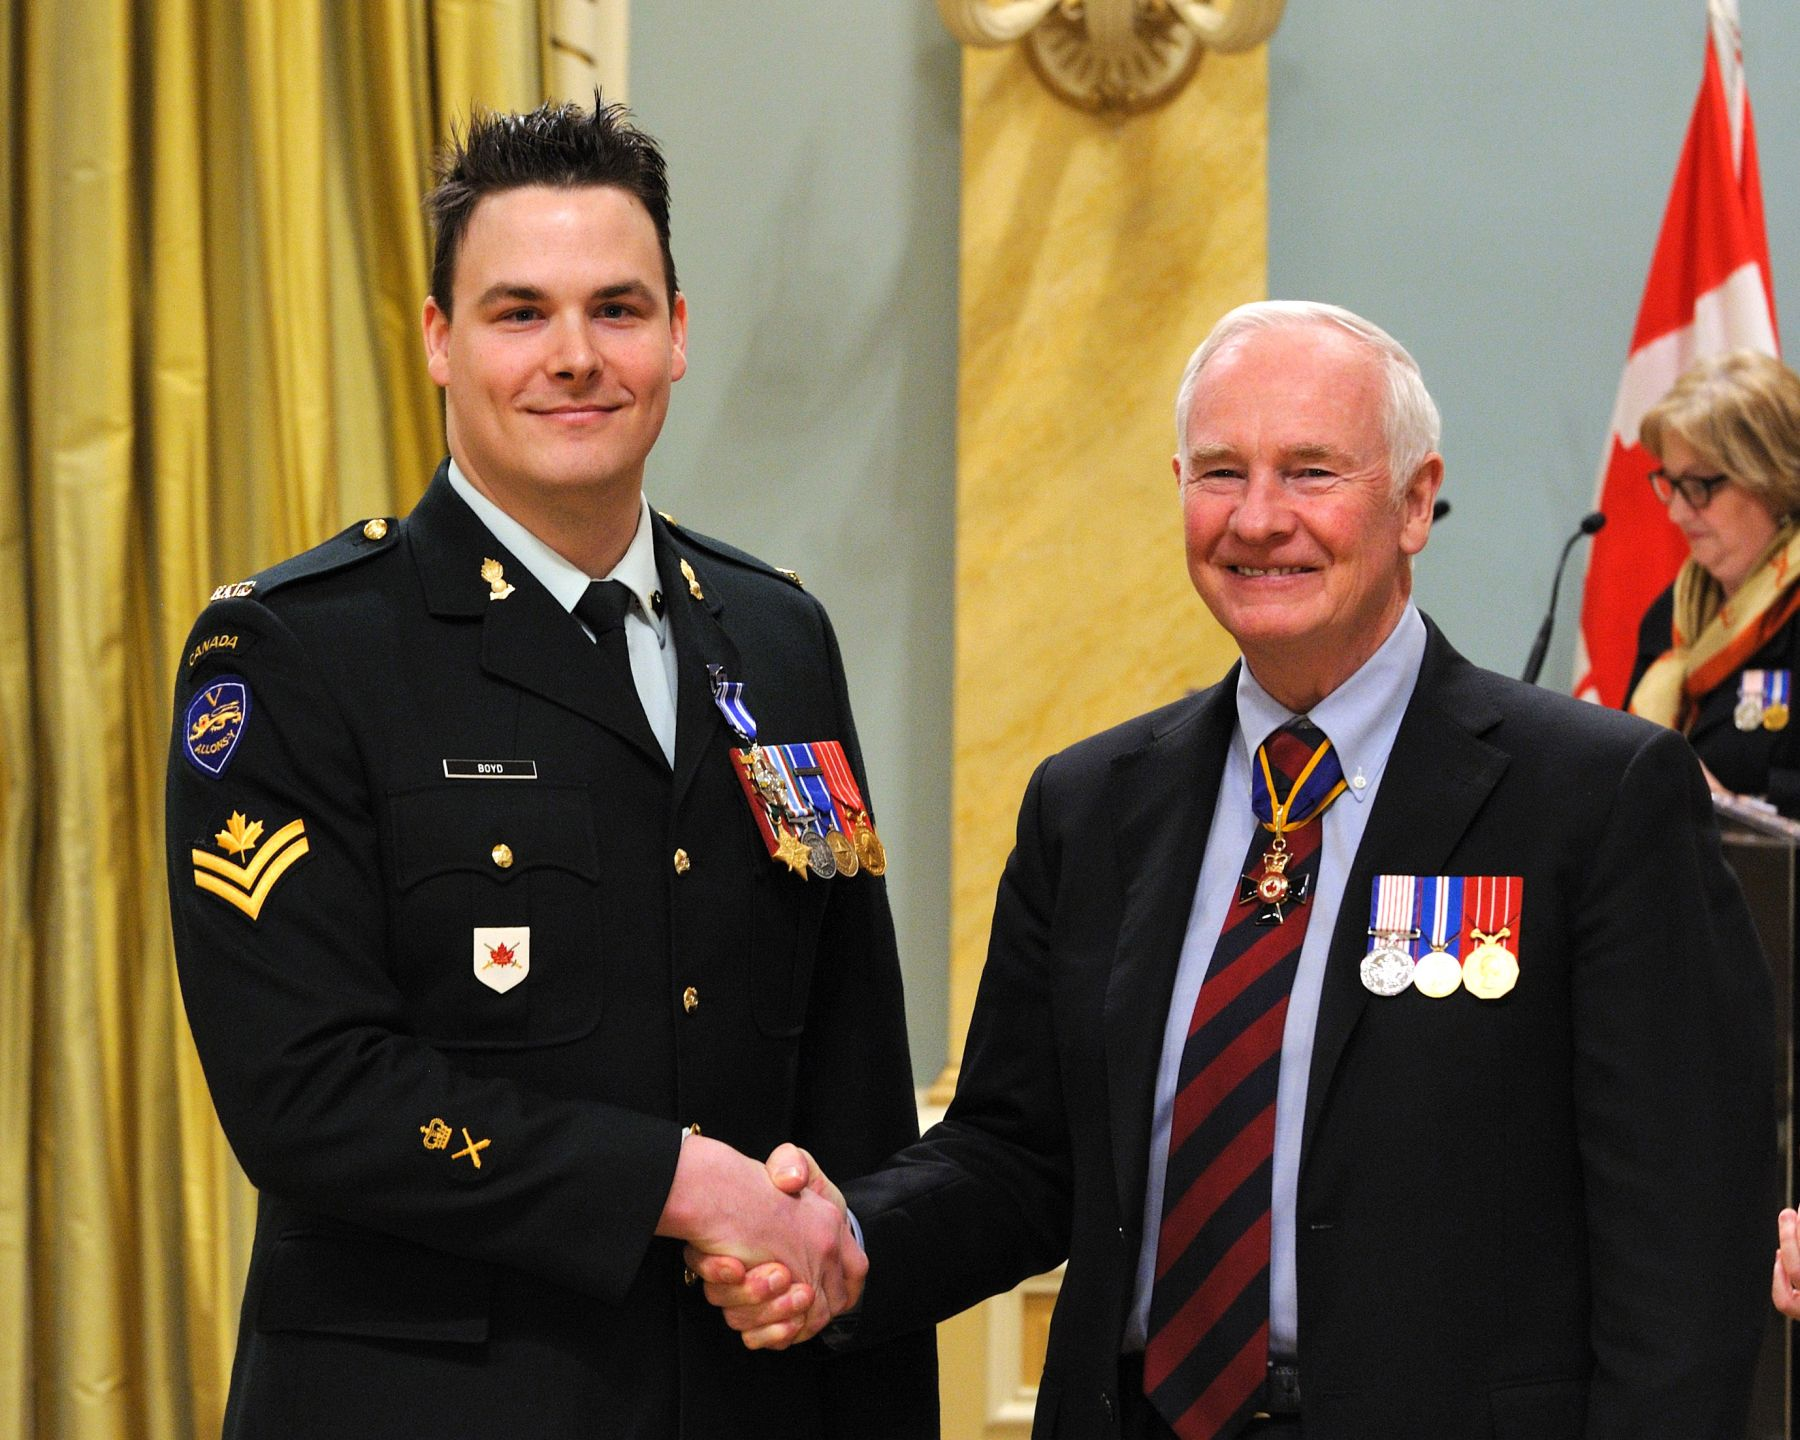 Master Corporal Danny Denis Boyd, M.S.M., C.D., received the Meritorious Service Medal (Military Division) from His Excellency. Master Corporal Boyd's leadership and technical skills greatly improved the efficiency of the Fire Support Coordination Centre within Joint Task Force Afghanistan Headquarters during his deployment from November 2009 to September 2010. In addition to developing a method that enhanced information management, he was selected to brief an American unit on the Centre's procedures, helping them integrate seamlessly into the area of operations. Master Corporal Boyd's dedicated efforts enhanced the Centre's ability to ensure the effective delivery of fire support.